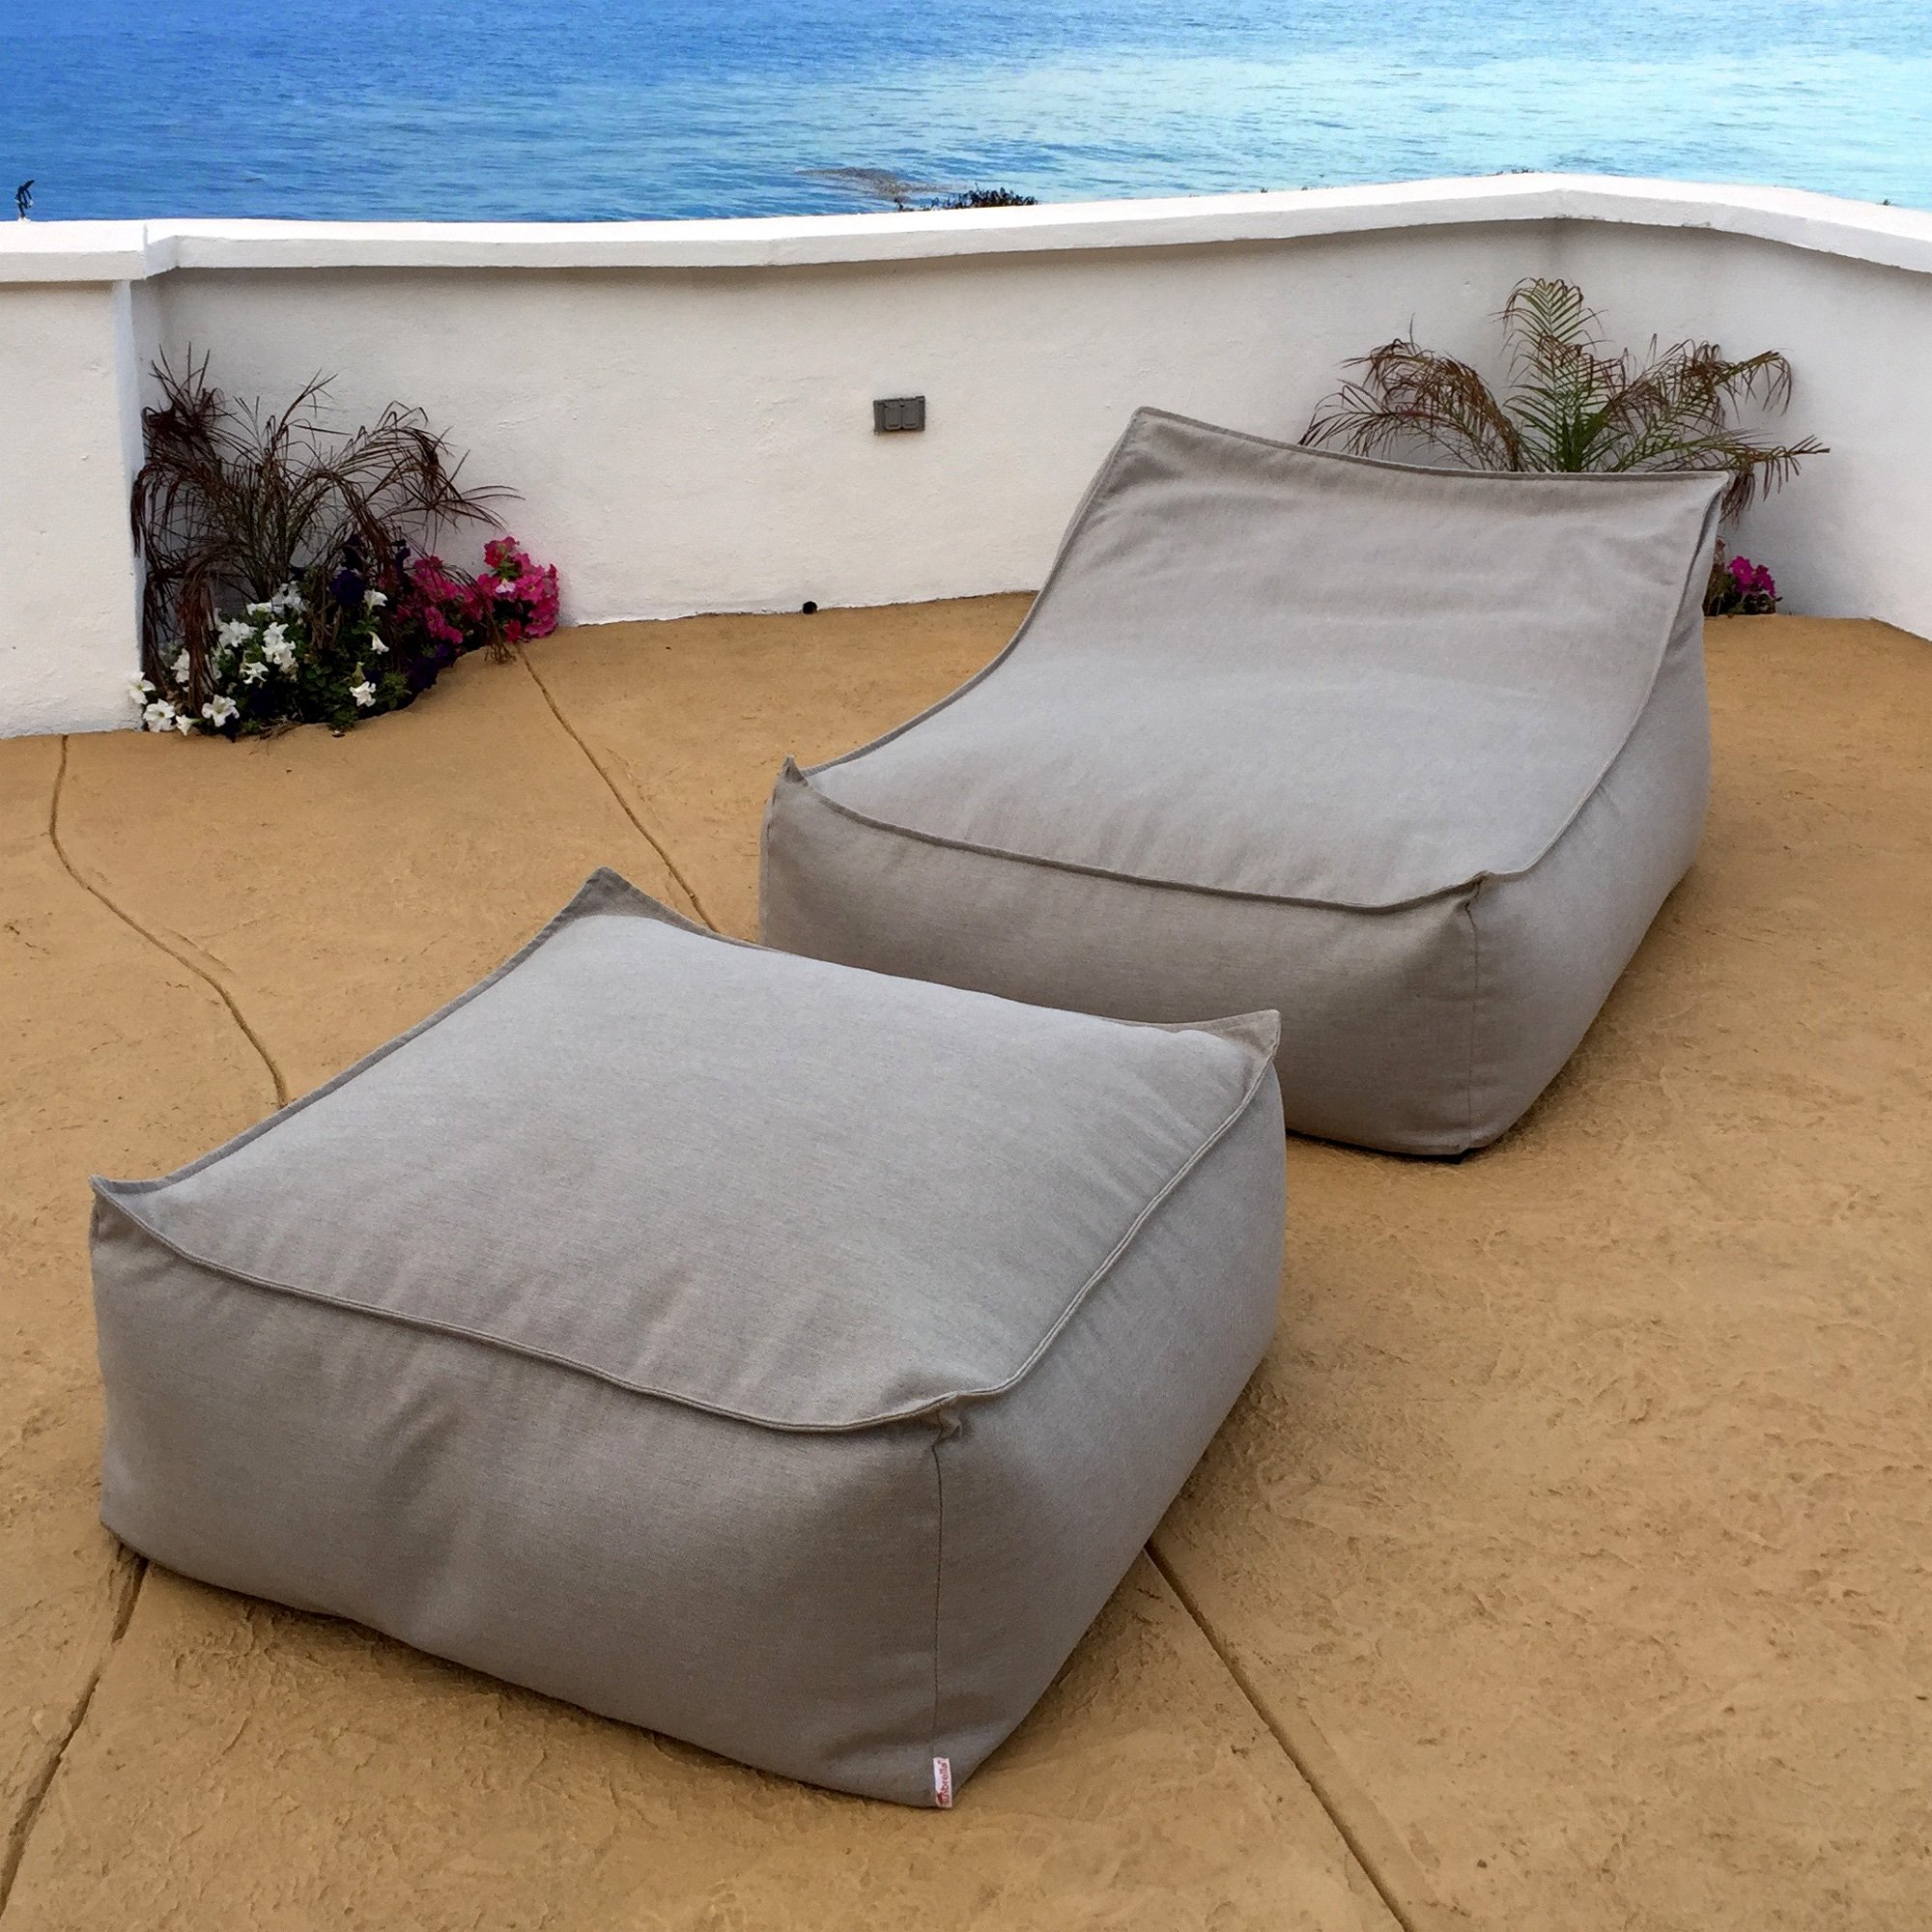 Core Covers Outdoor/Indoor Sunbrella Ottoman, 30'' x 30'' x 14'', Sailcloth Space by Core Covers (Image #2)